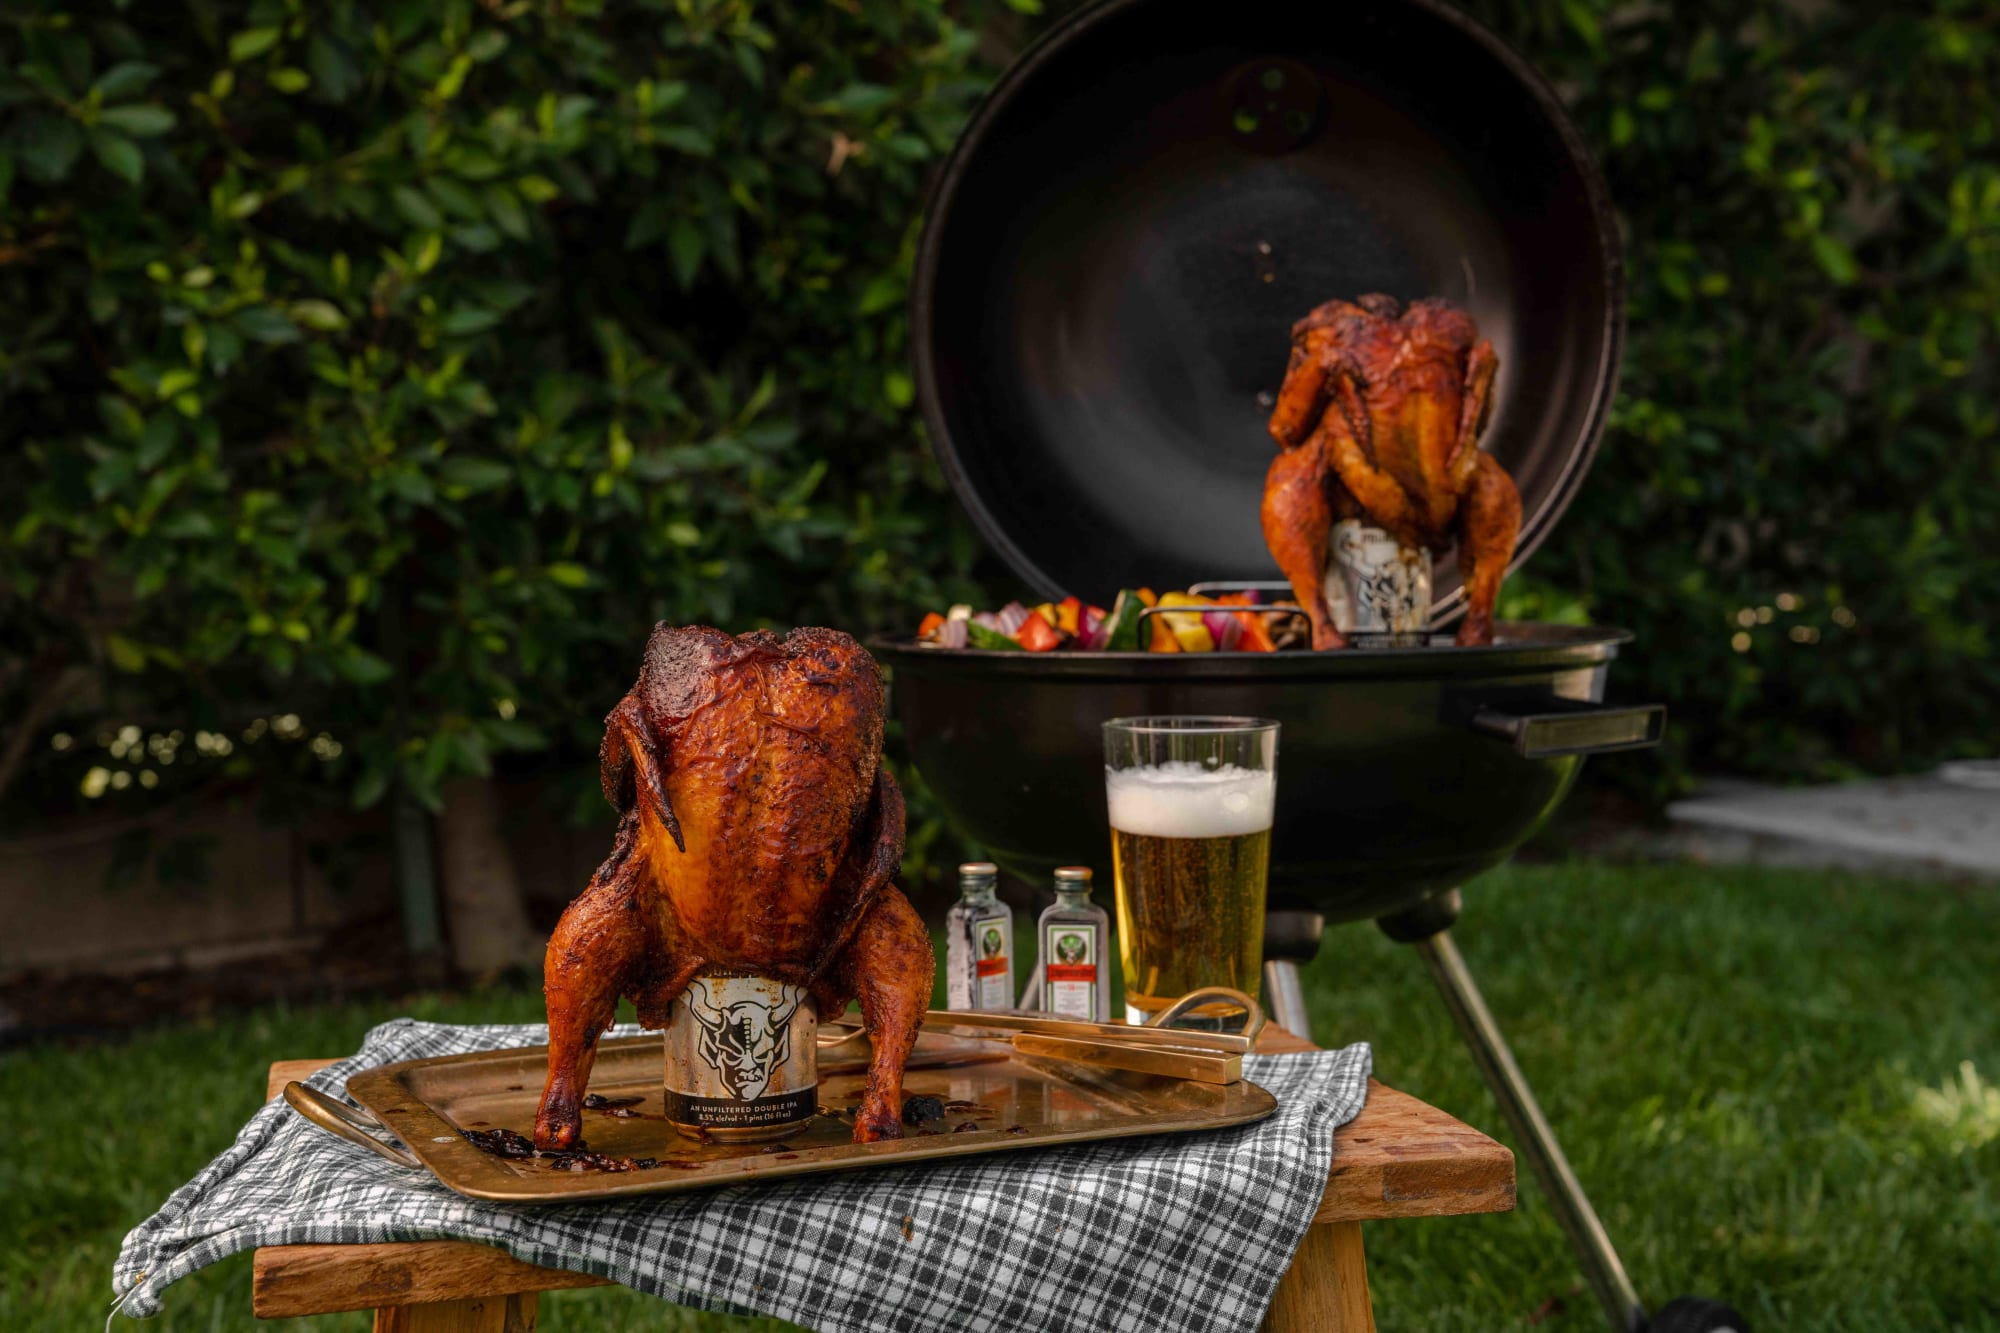 The best beer can chicken recipe isn't about the beer